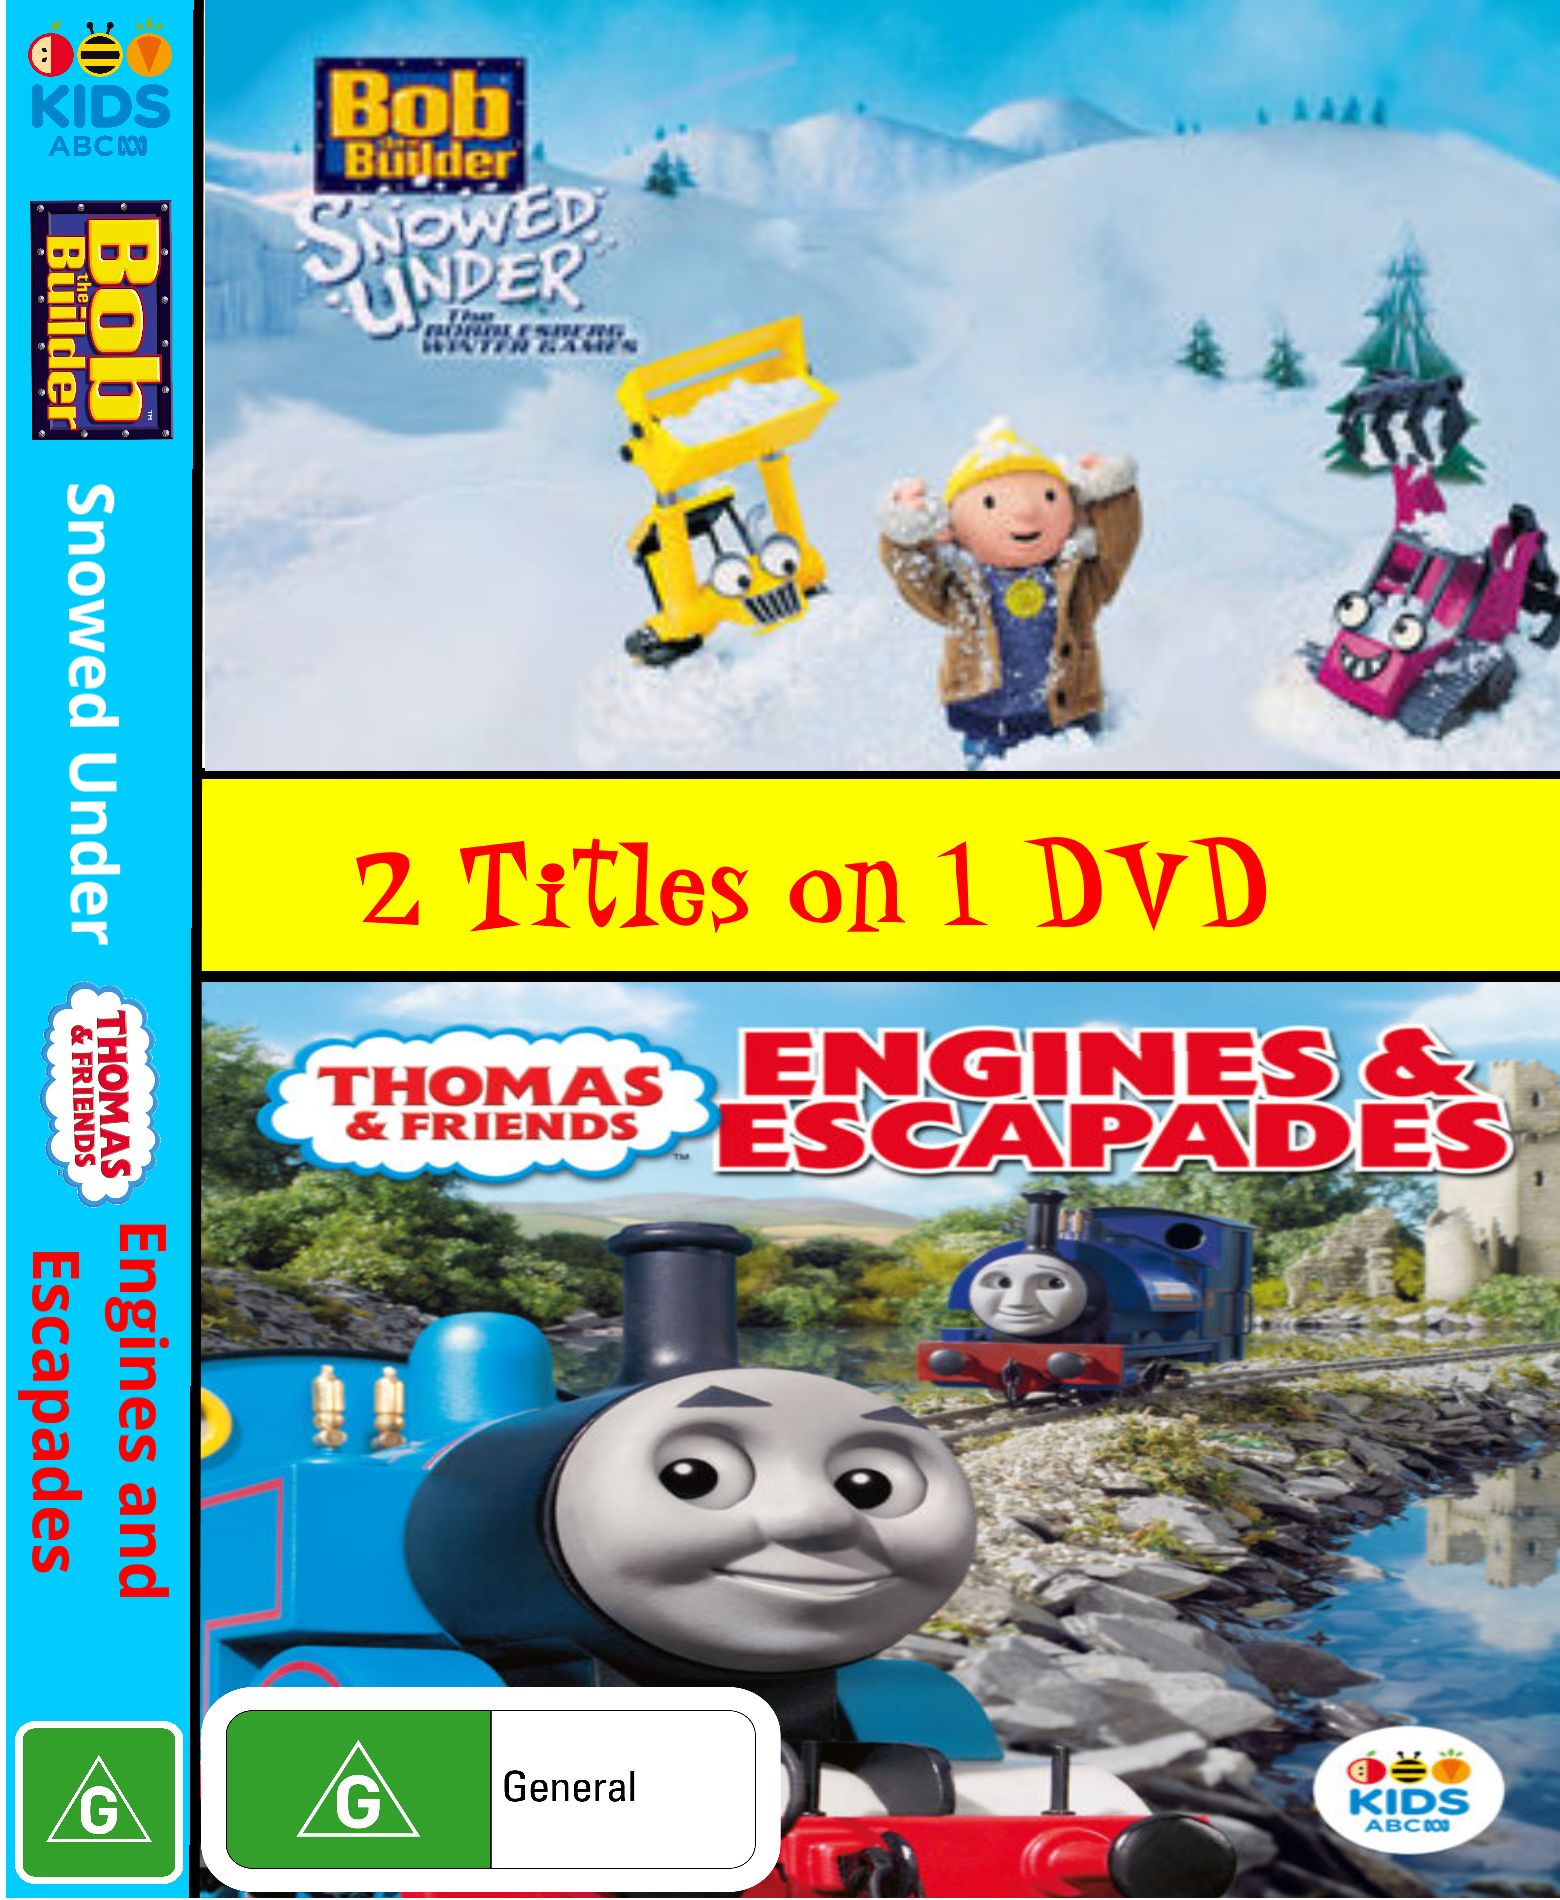 Bob the Builder and Thomas and Friends: Snowed Under and Engines and Escapades